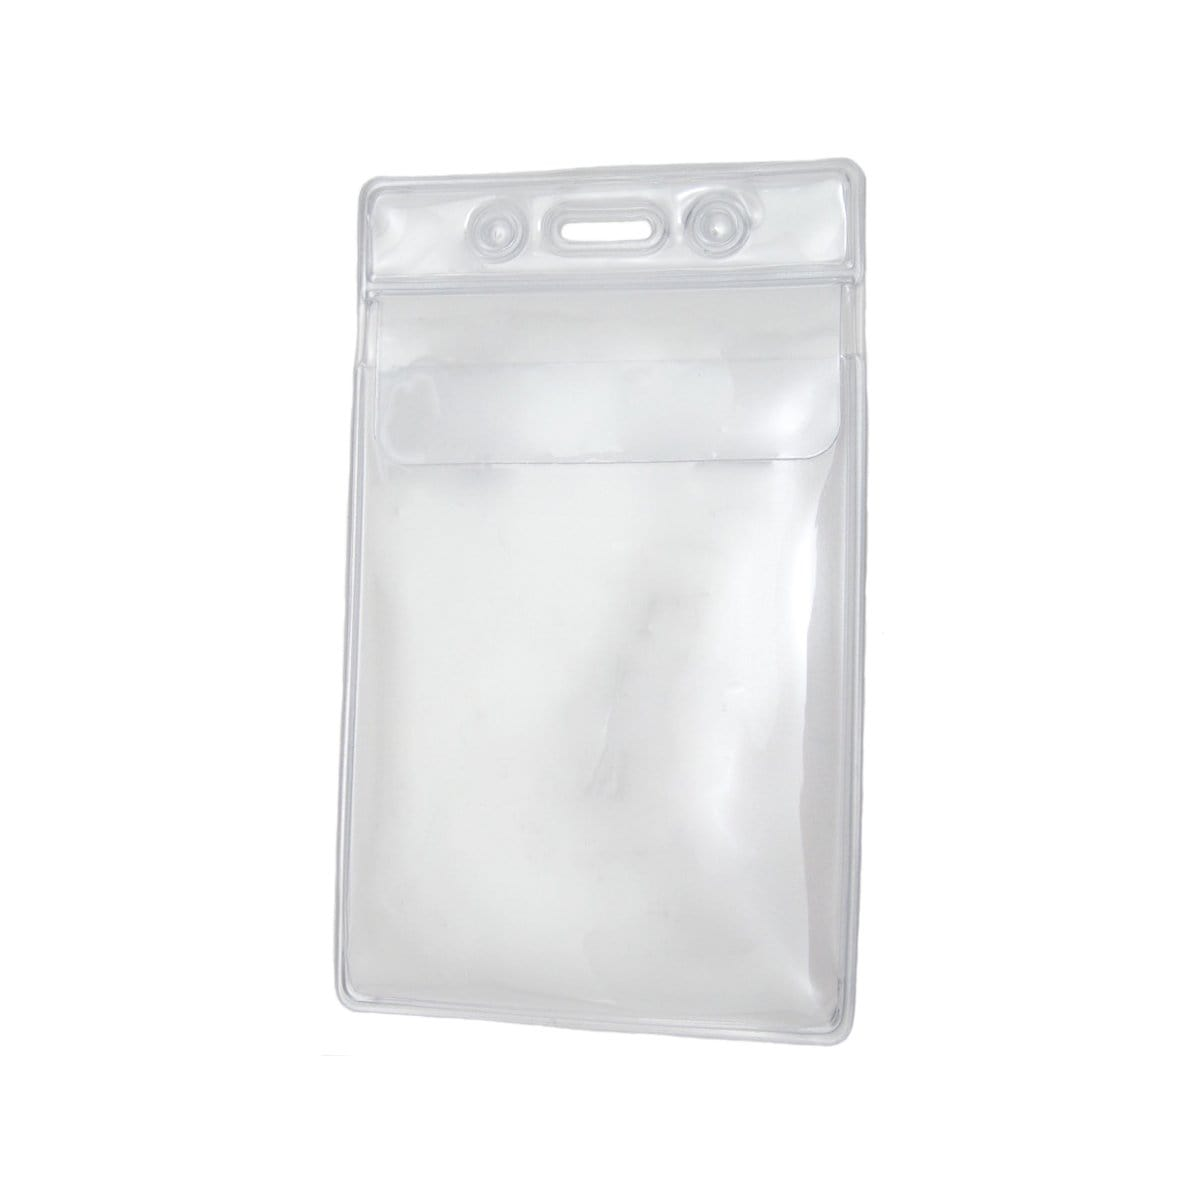 "Clear 2 7/8"" X 4 1/4"" Vinyl Vertical Large Badge Holder With Tuck-In Flap (P/N 1840-5150)"